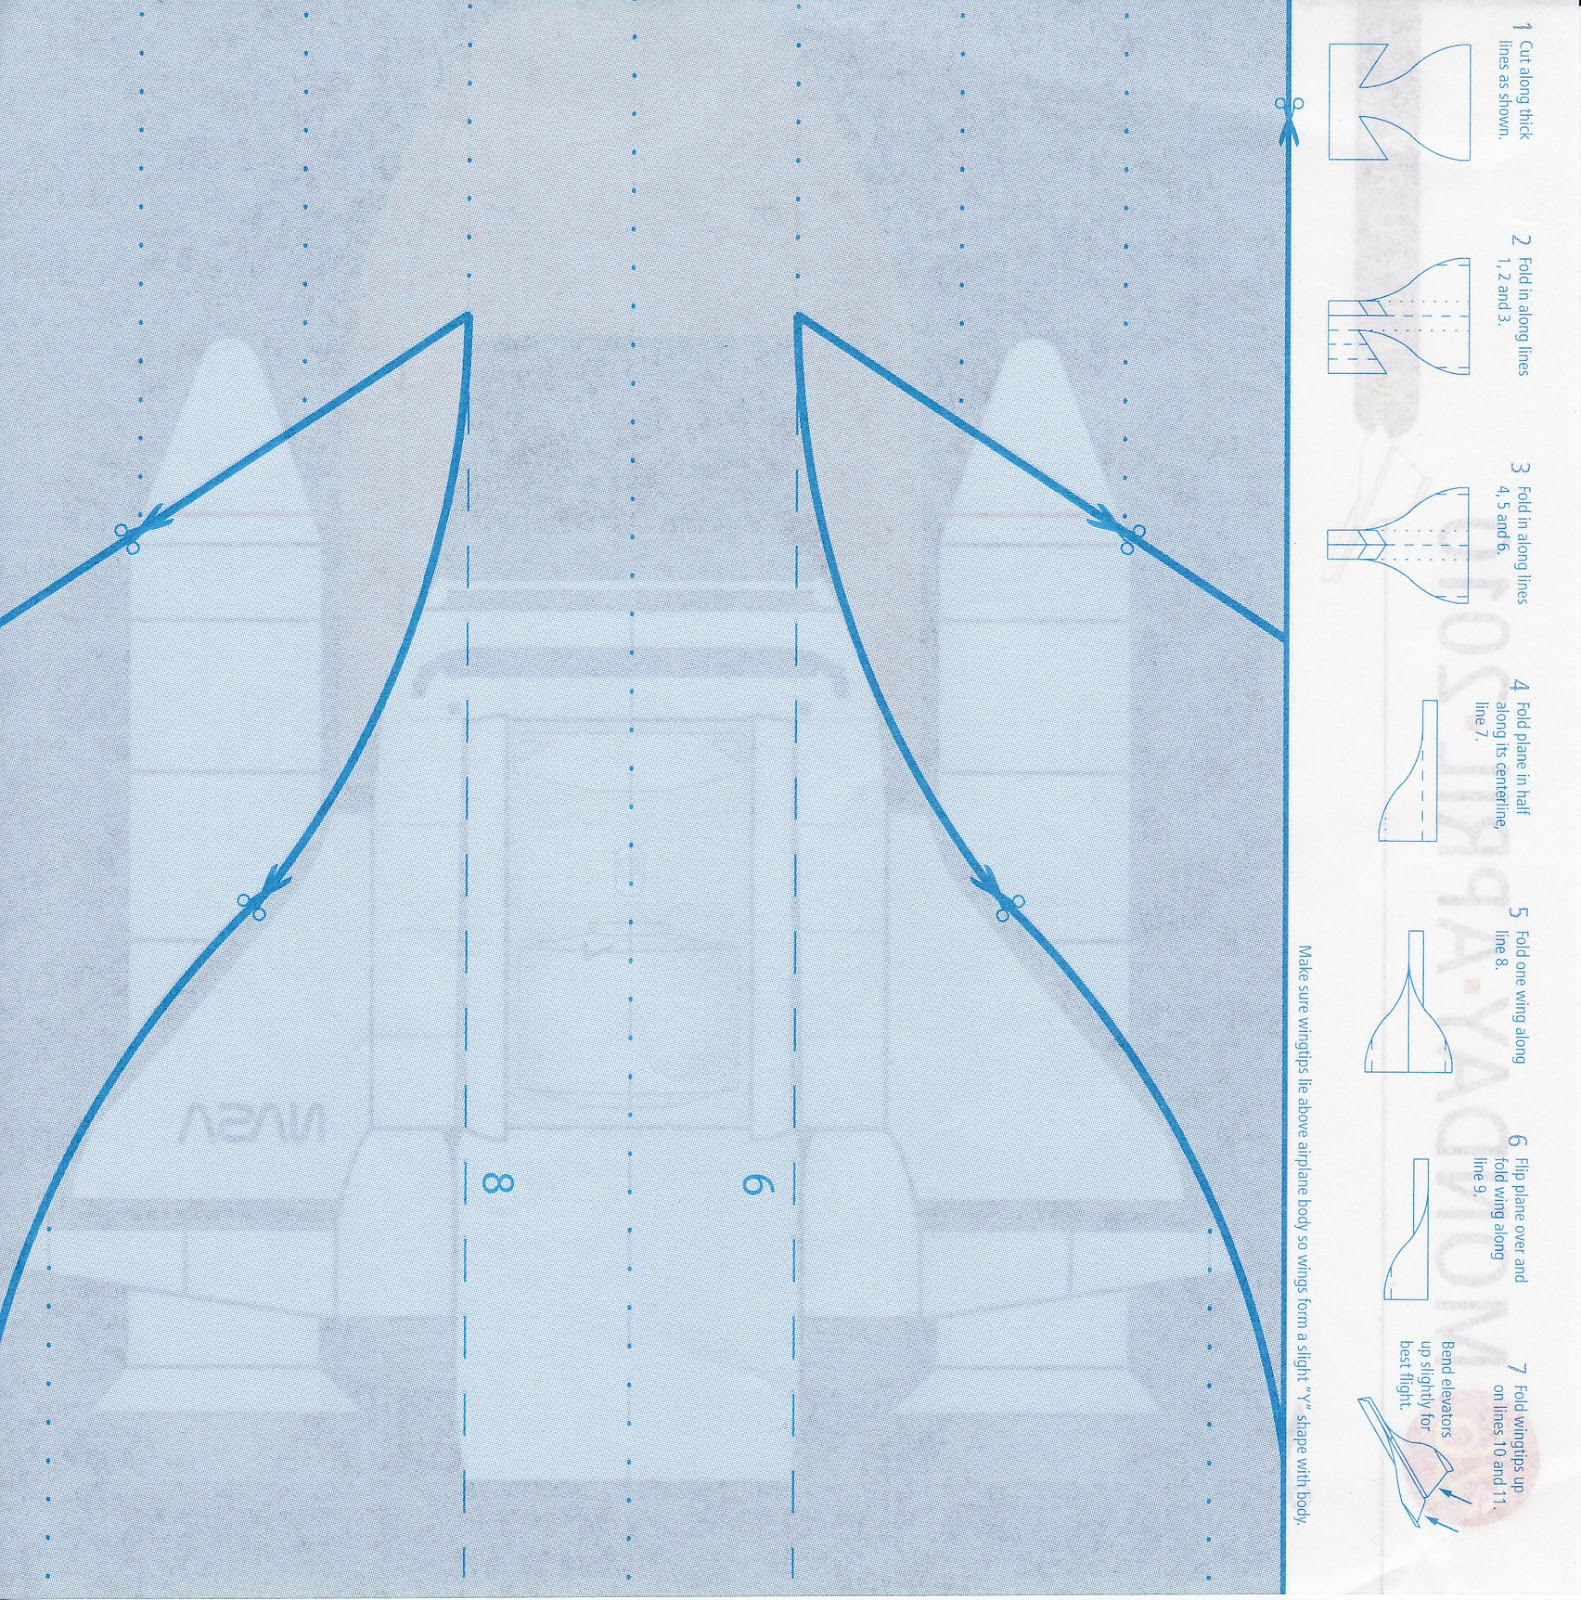 space shuttle template - photo #36